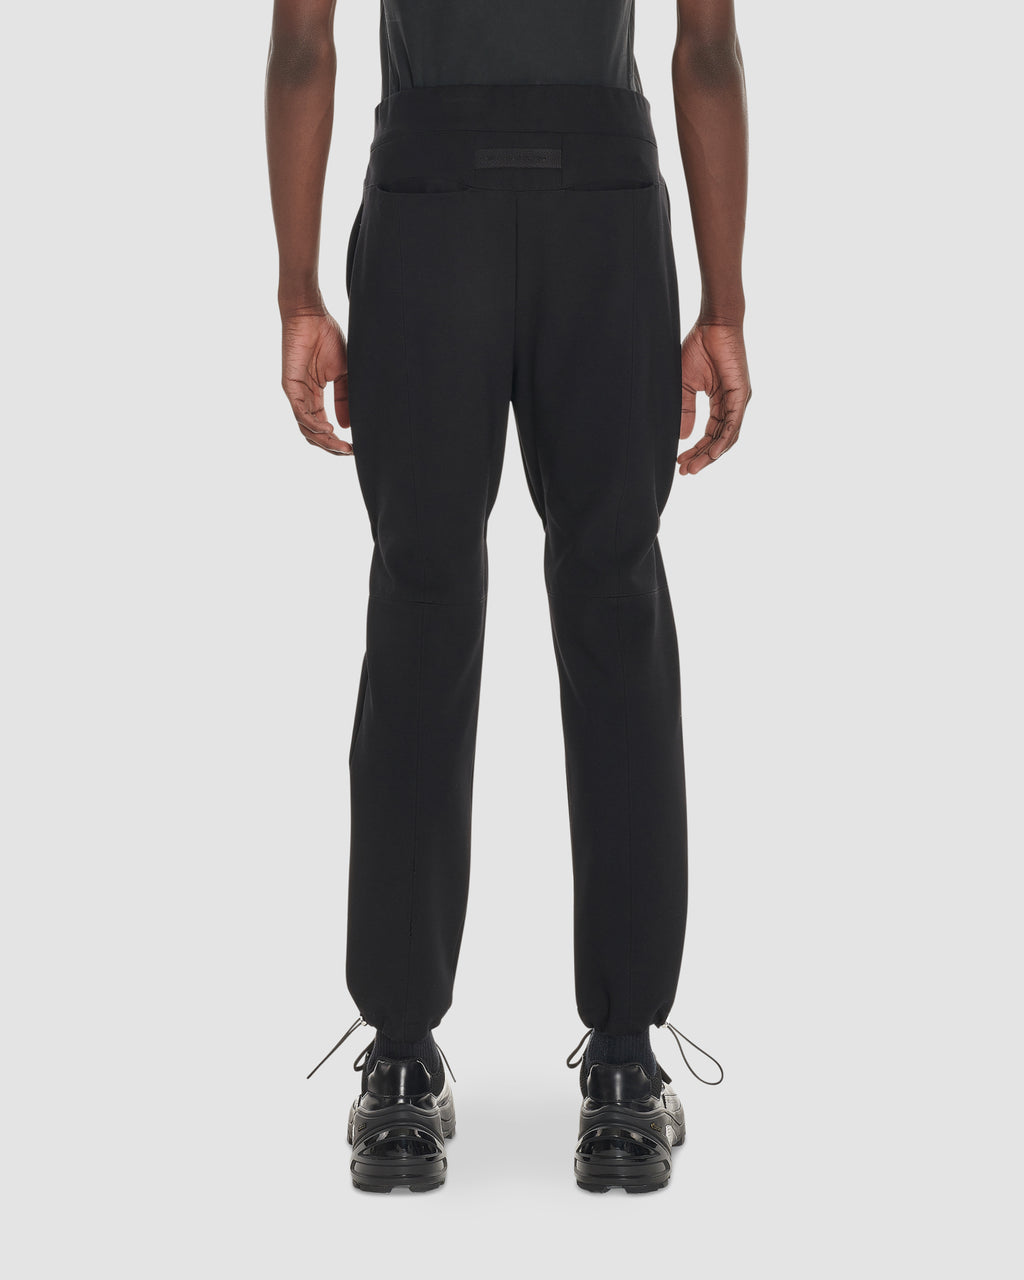 GAITER PANT W BUCKLE